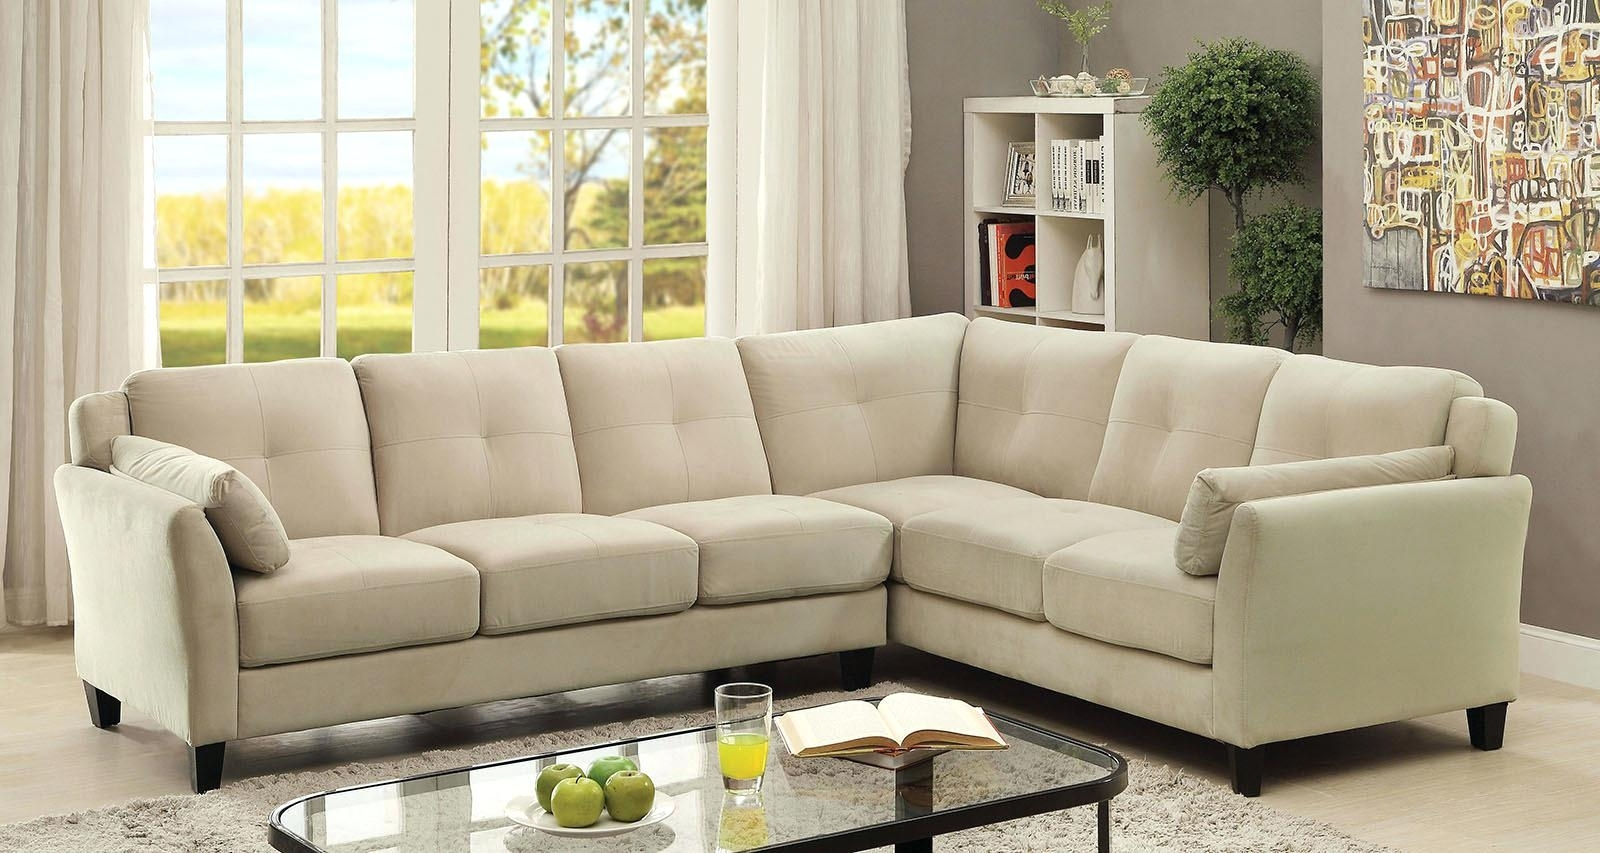 Canada Sale Sectional Sofas Regarding Latest Sectional Sofa Sale Sa Couches For Near Me Liquidation Toronto (View 11 of 15)